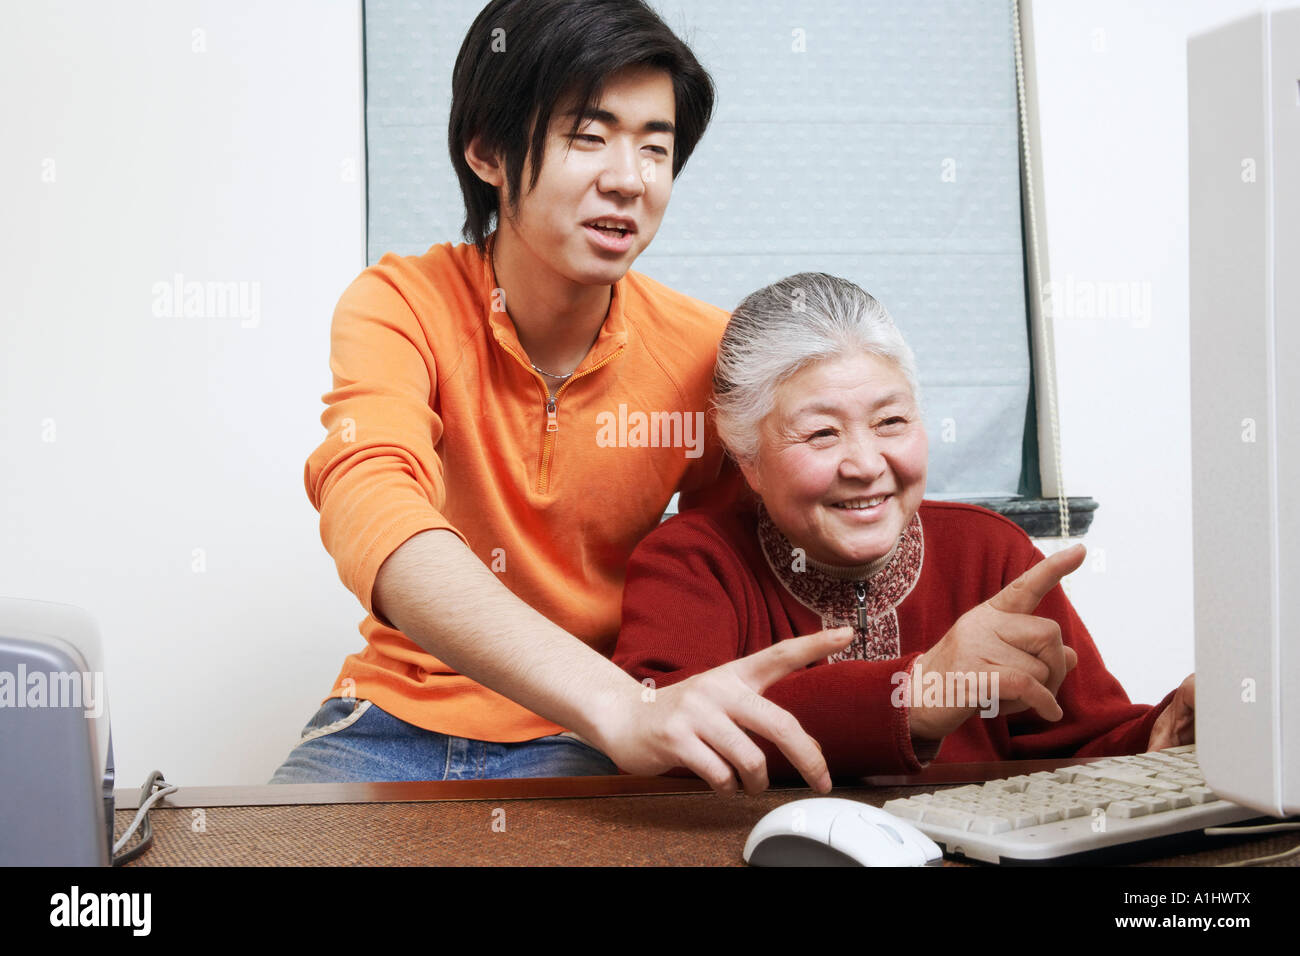 Close-up of a grandmother and her grandson using a computer - Stock Image